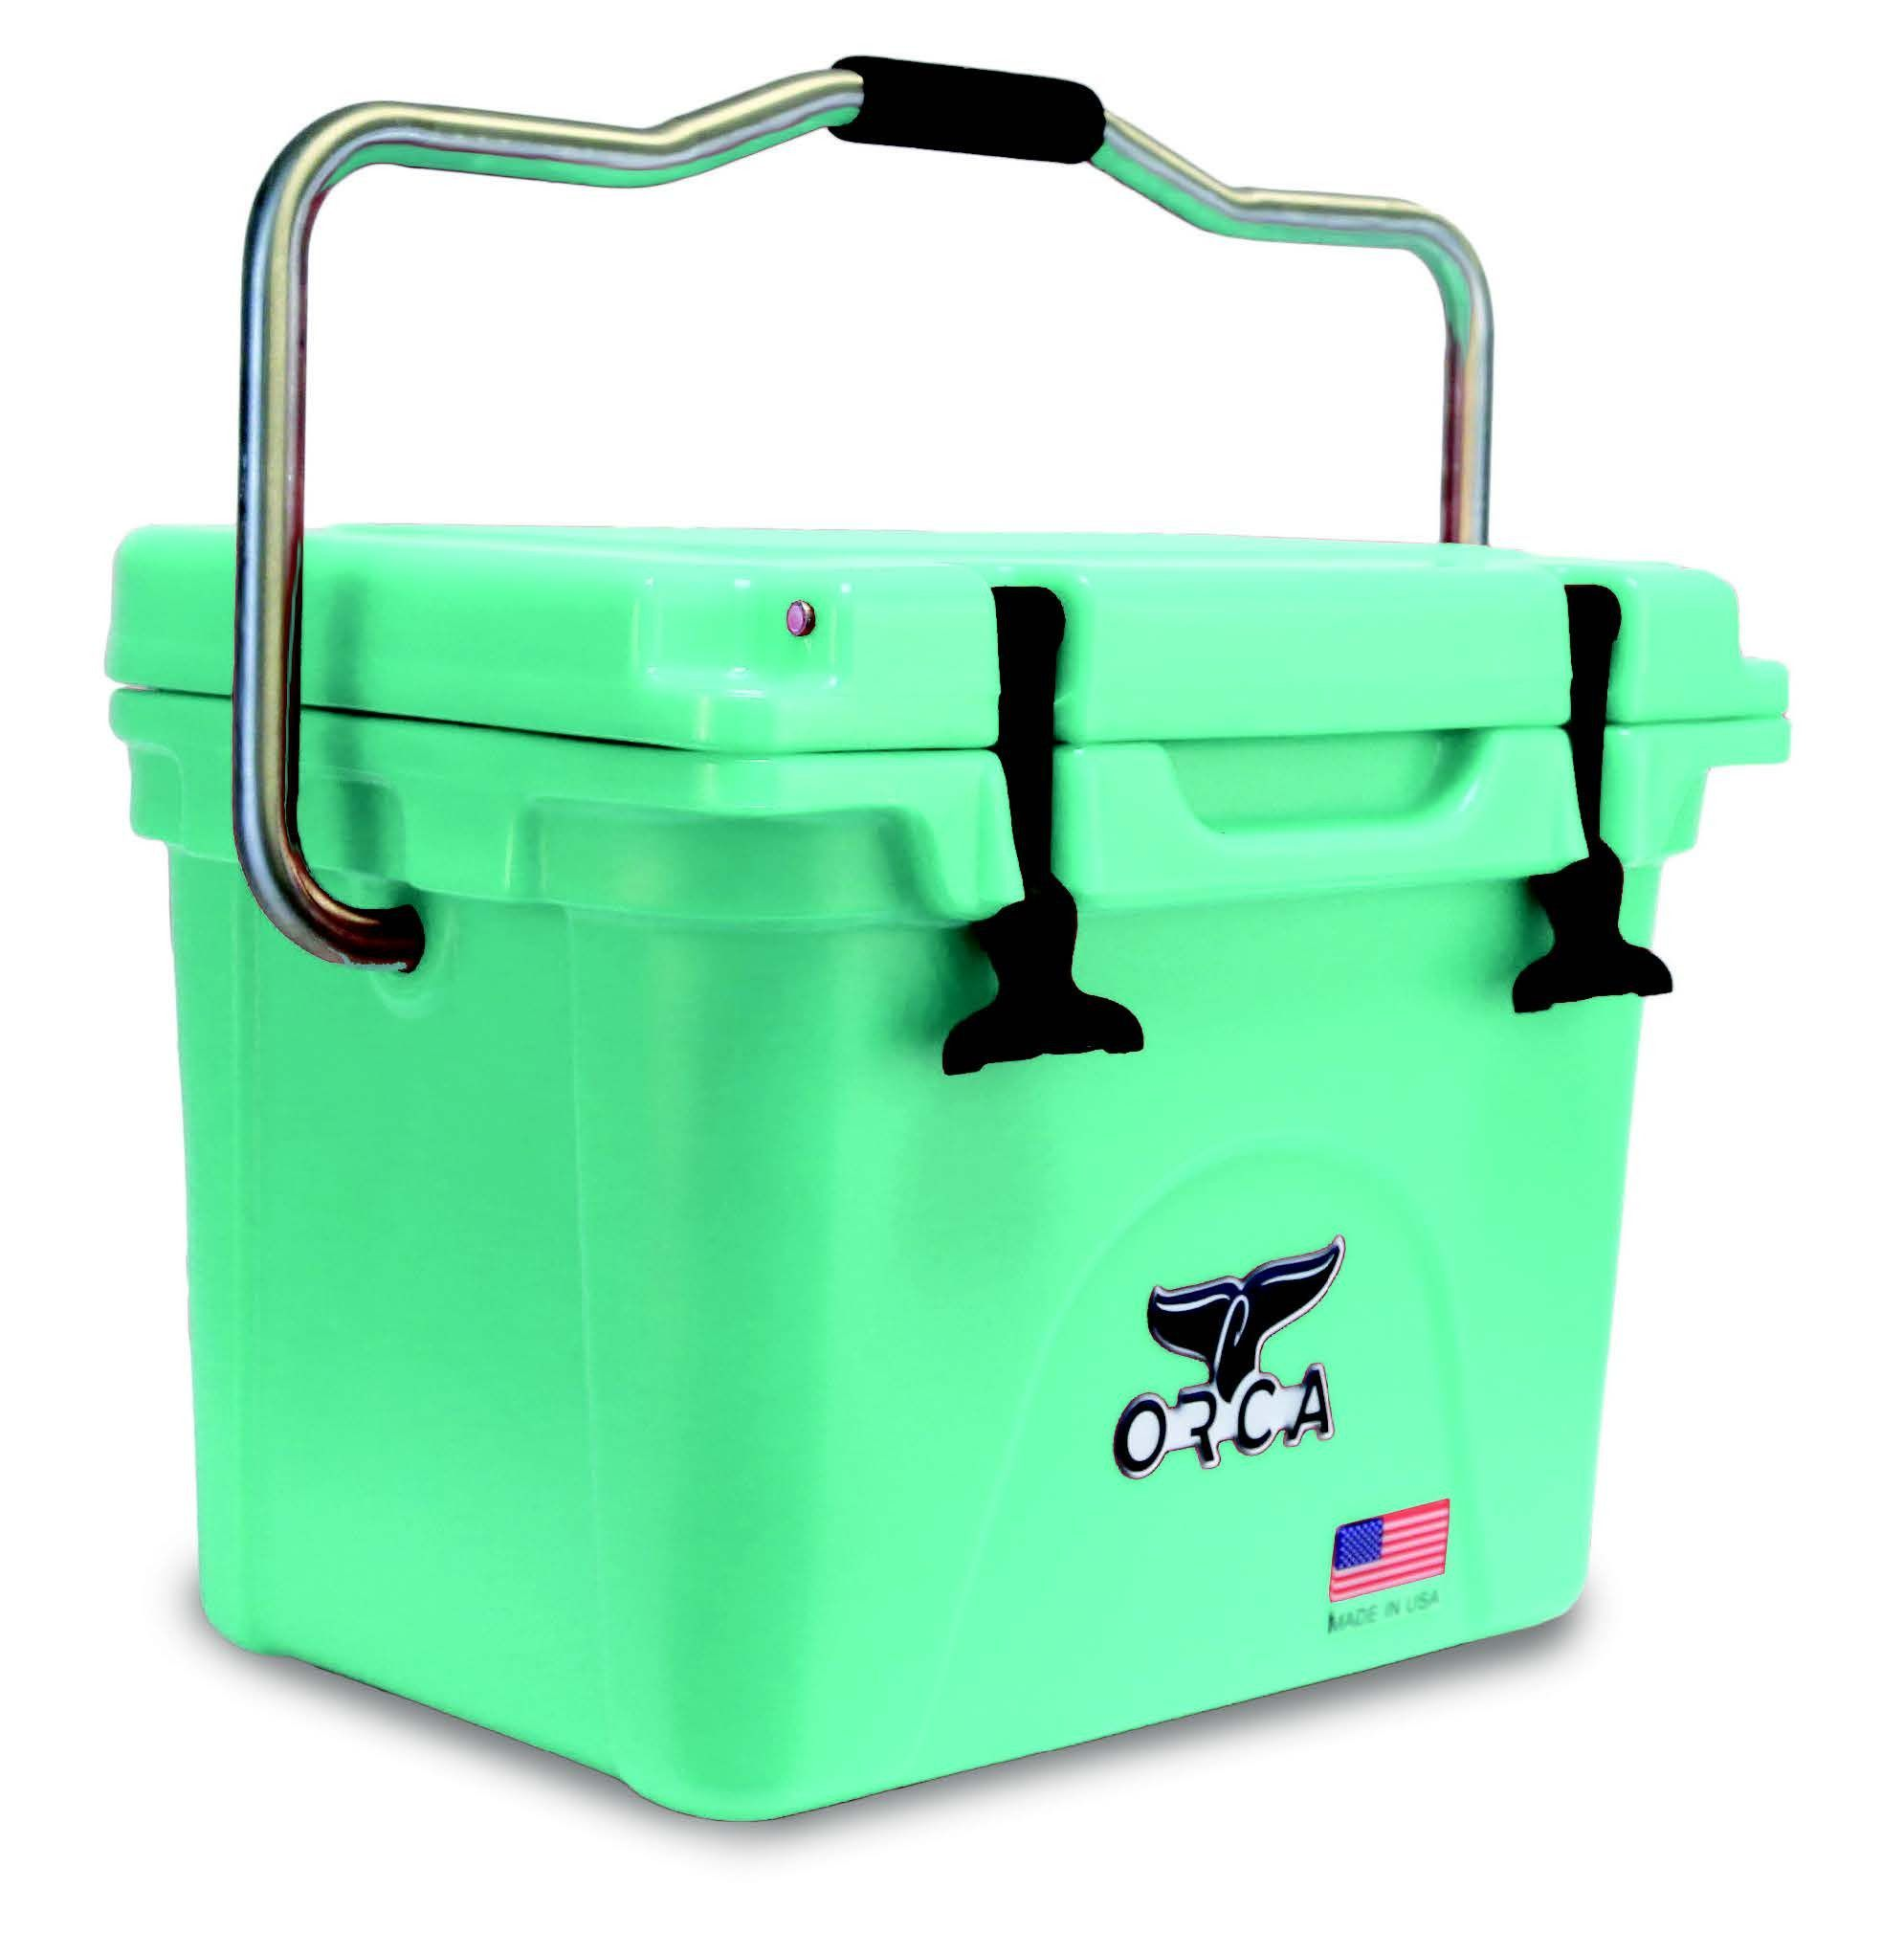 Orca Official Team Color Cooler 20 Qt Special Order Special Ordernon Stock Item Usually Delivered Within 2 Weeks Orca Cooler Orca Team Colors